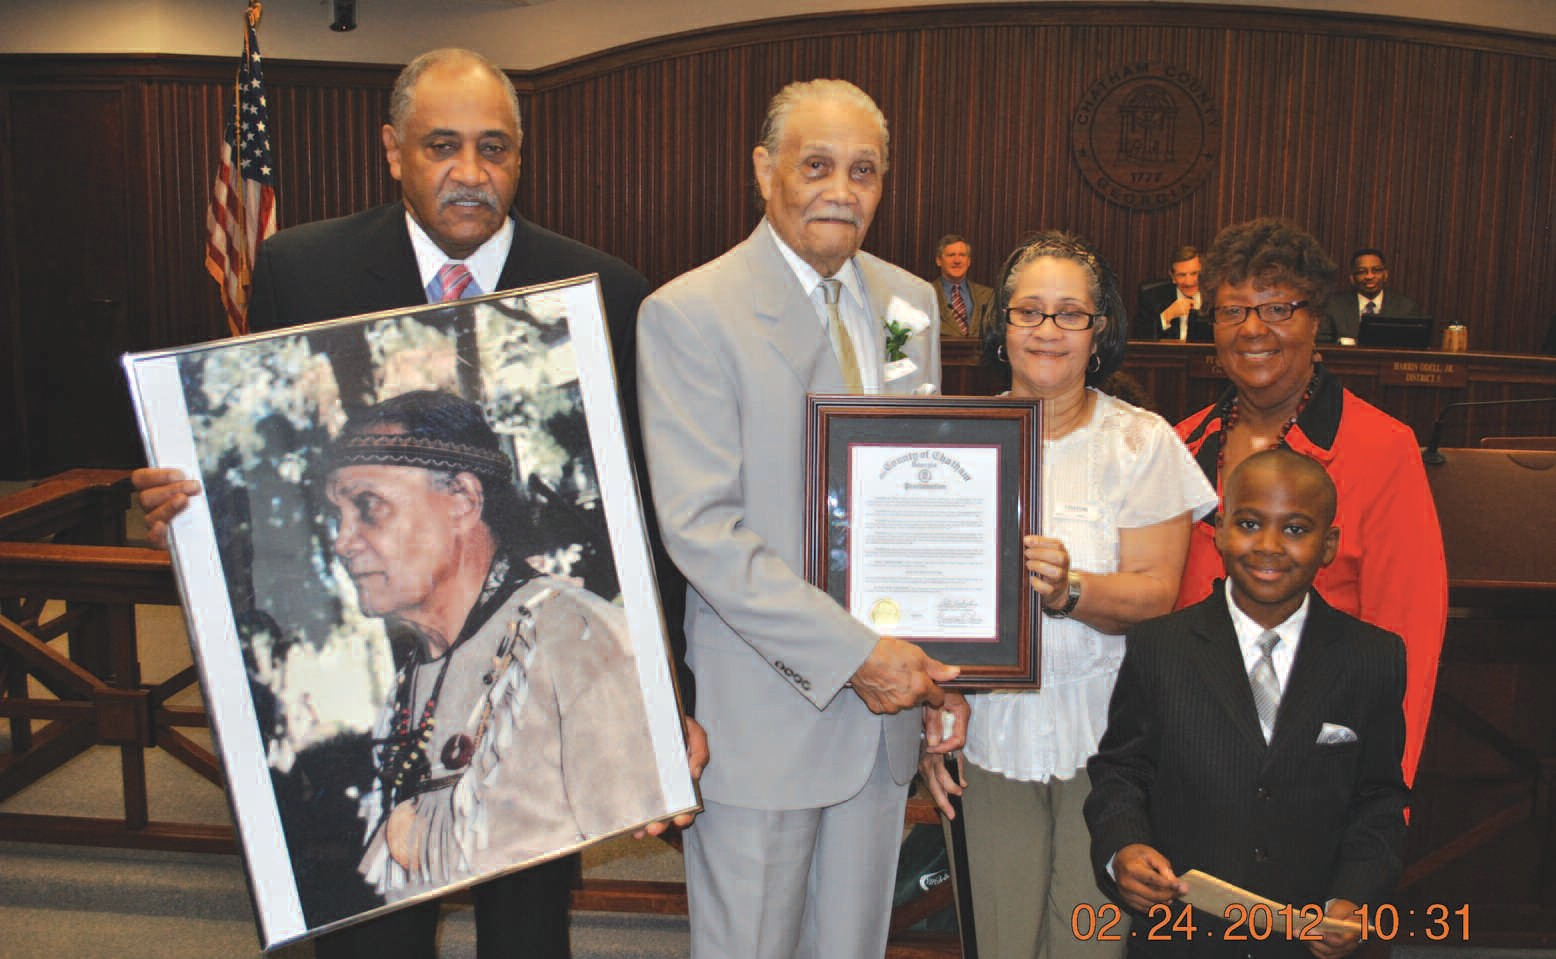 Commissioner Thomas presents proclamation honoring Deacon Rufus Peters as the First African American Tomochichi in recognition of Black History Month. (Commissioner Priscilla Thomas was assisted by Jakari Flowers)